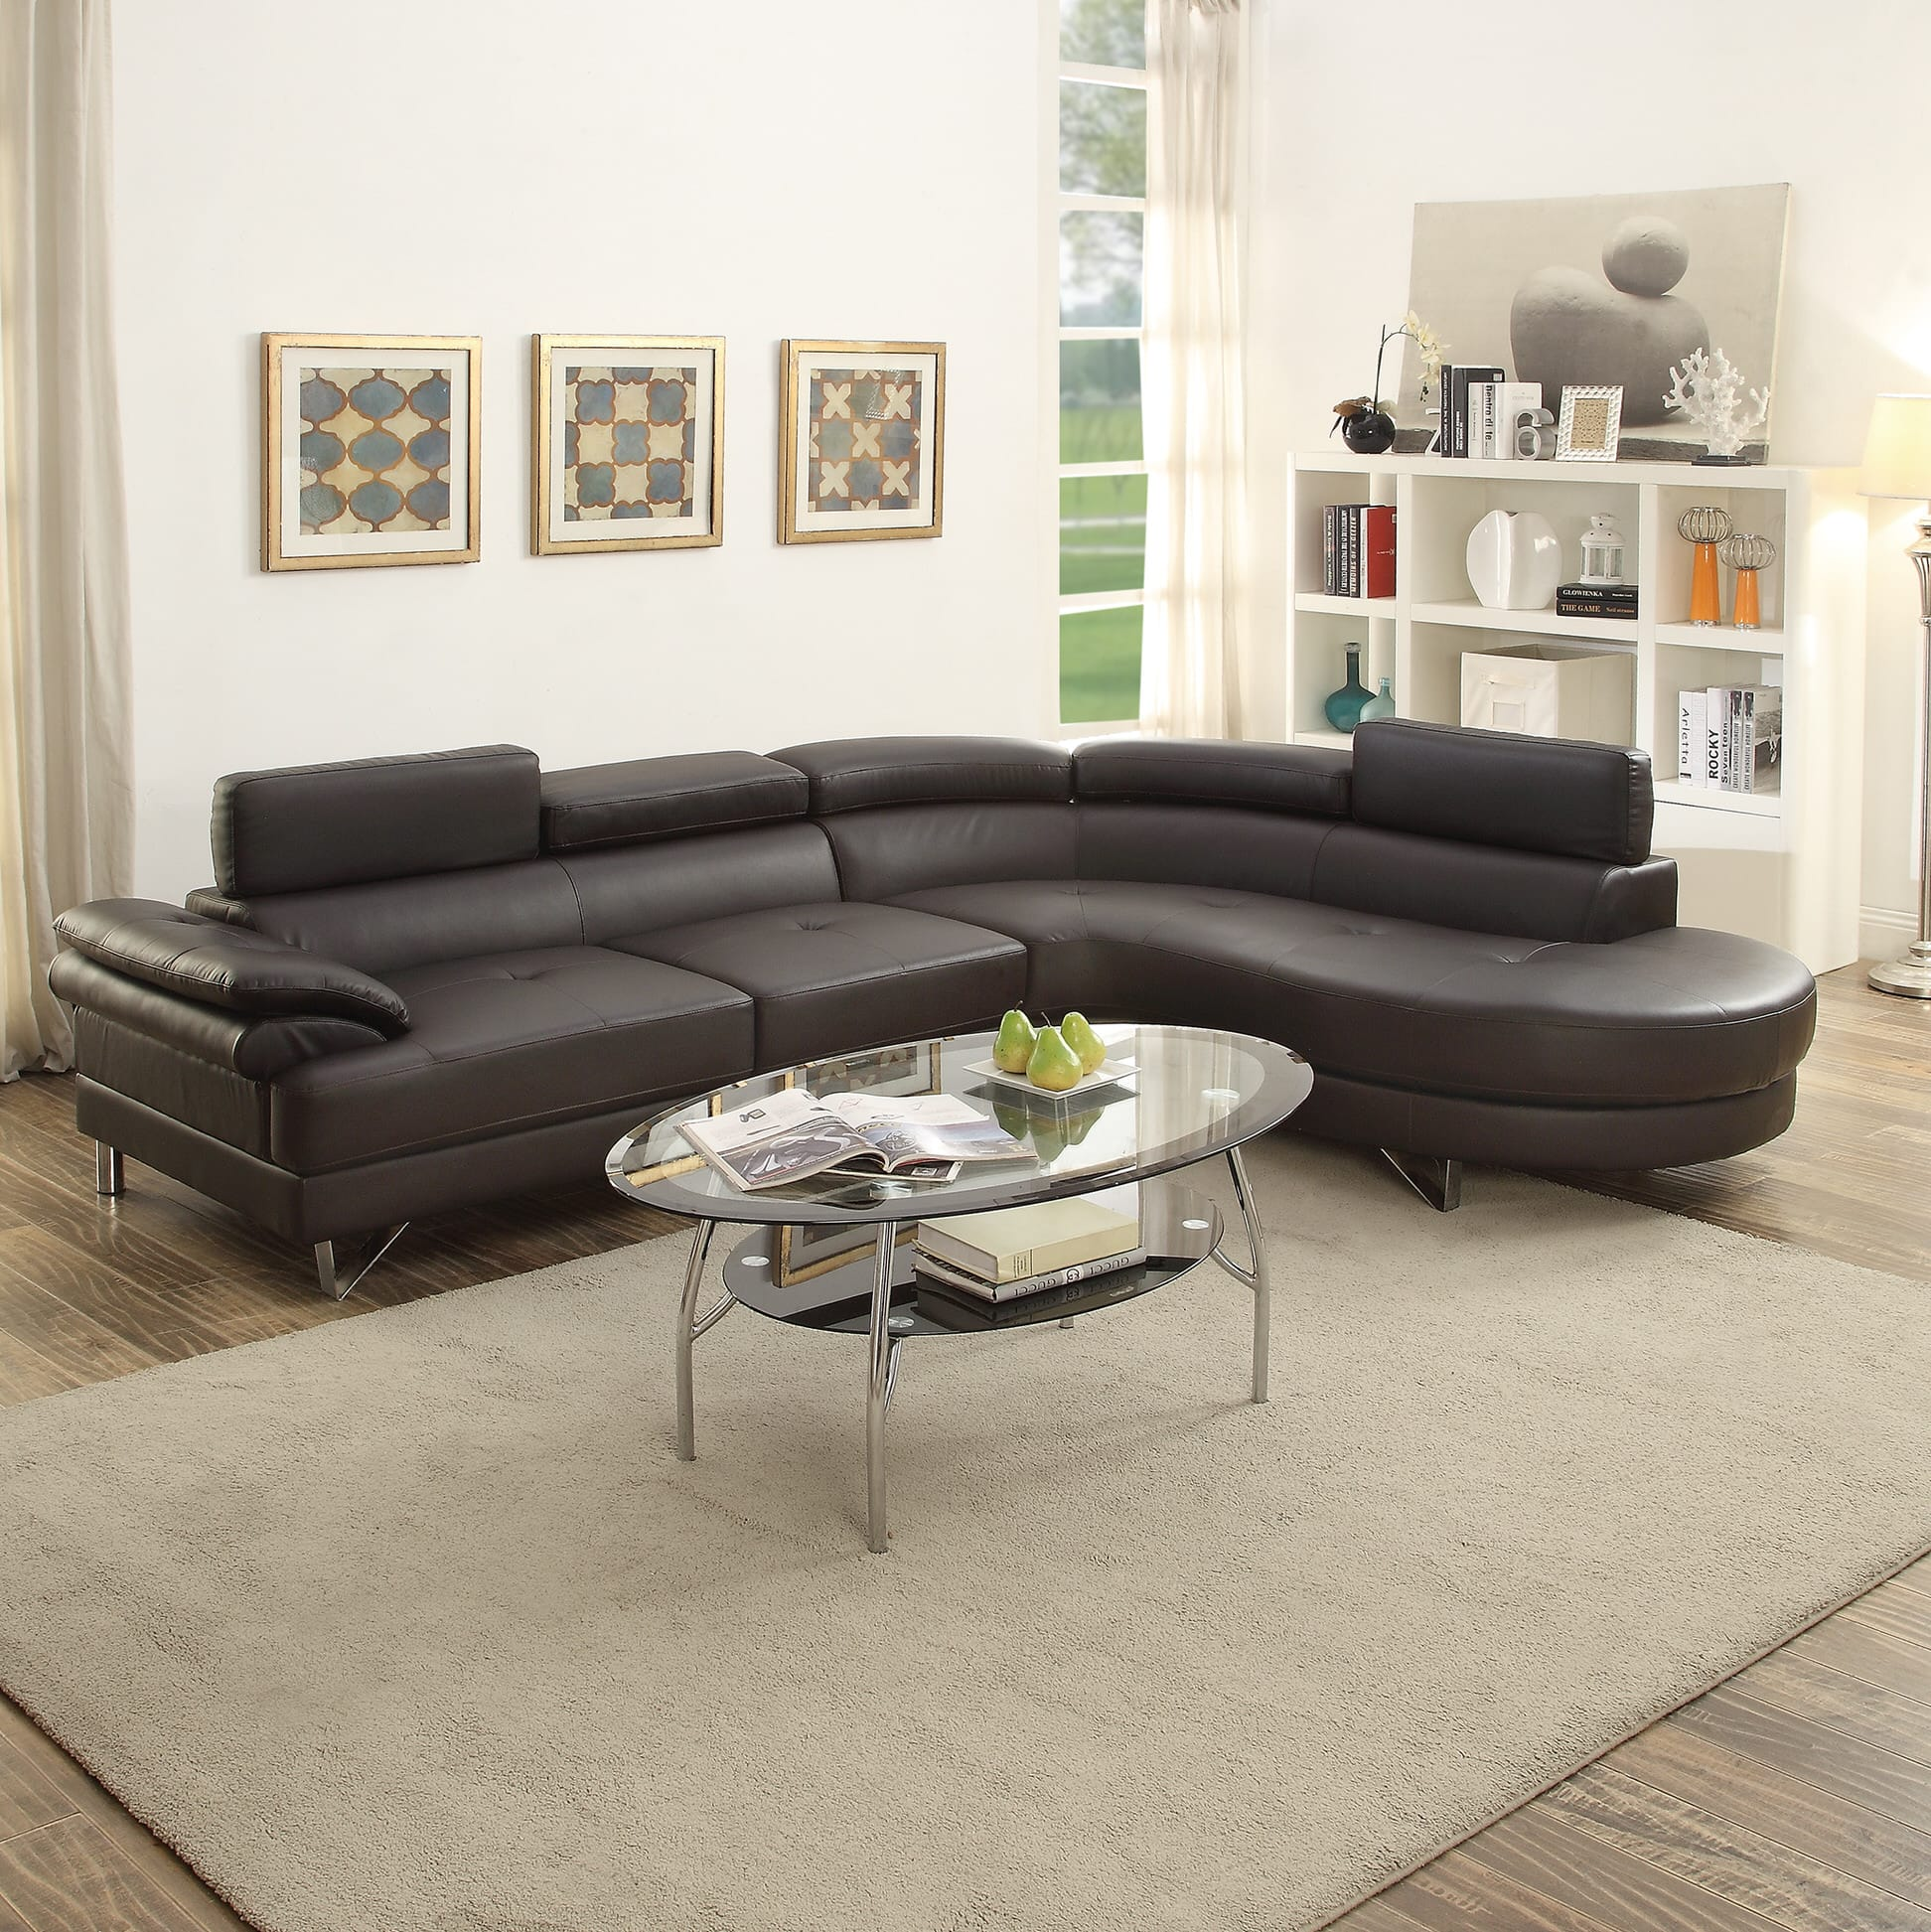 f6969 espresso 2 pcs sectional sofa set by poundex